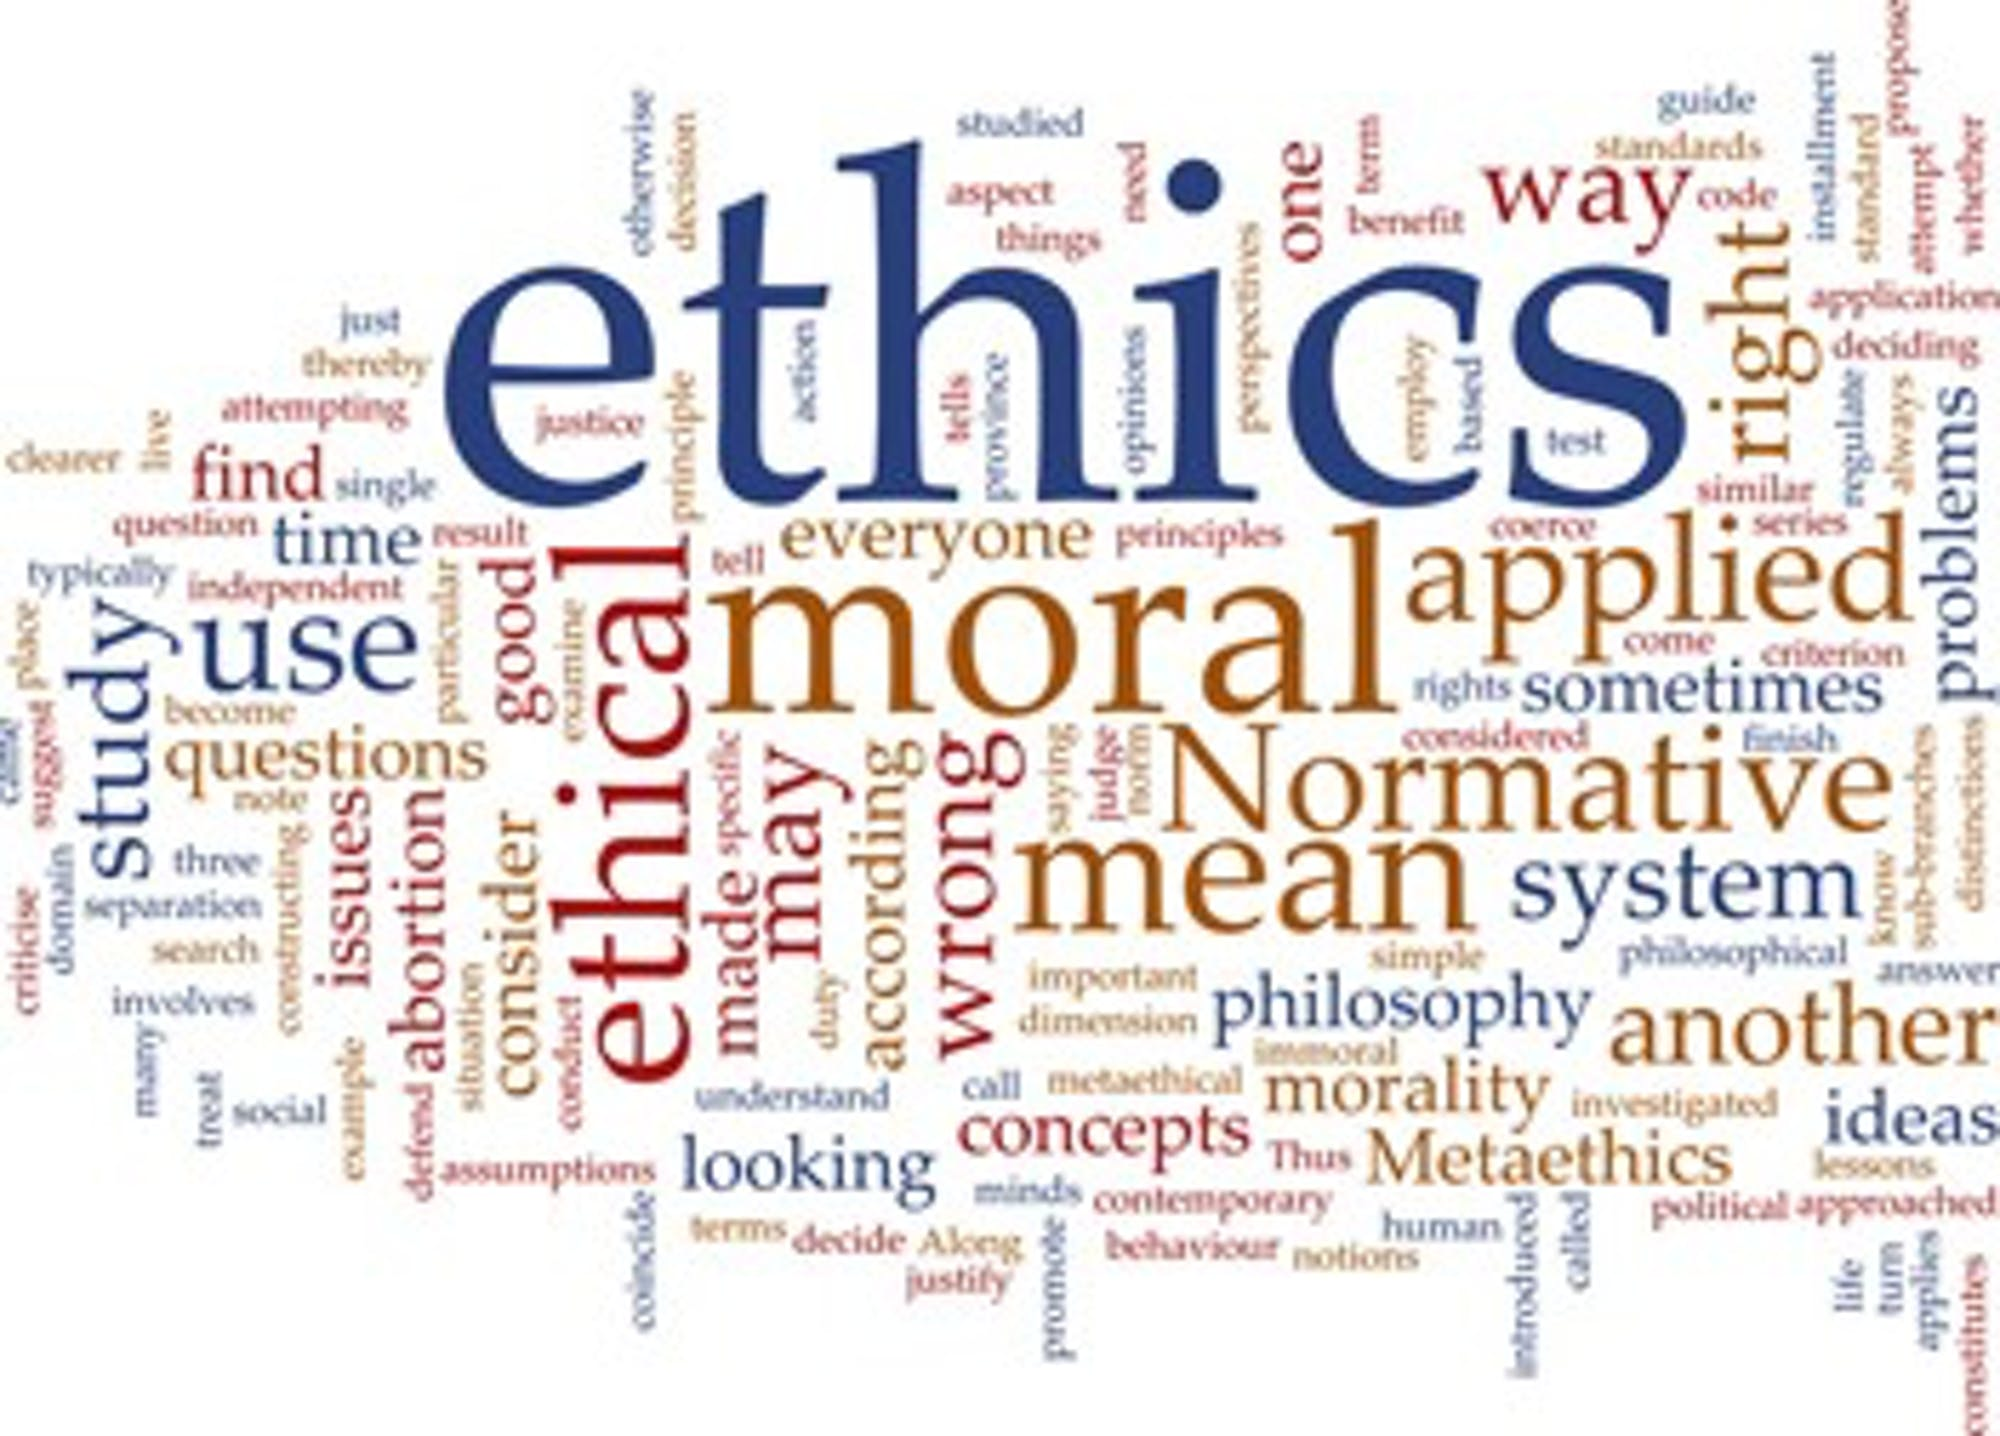 morals-and-ethics